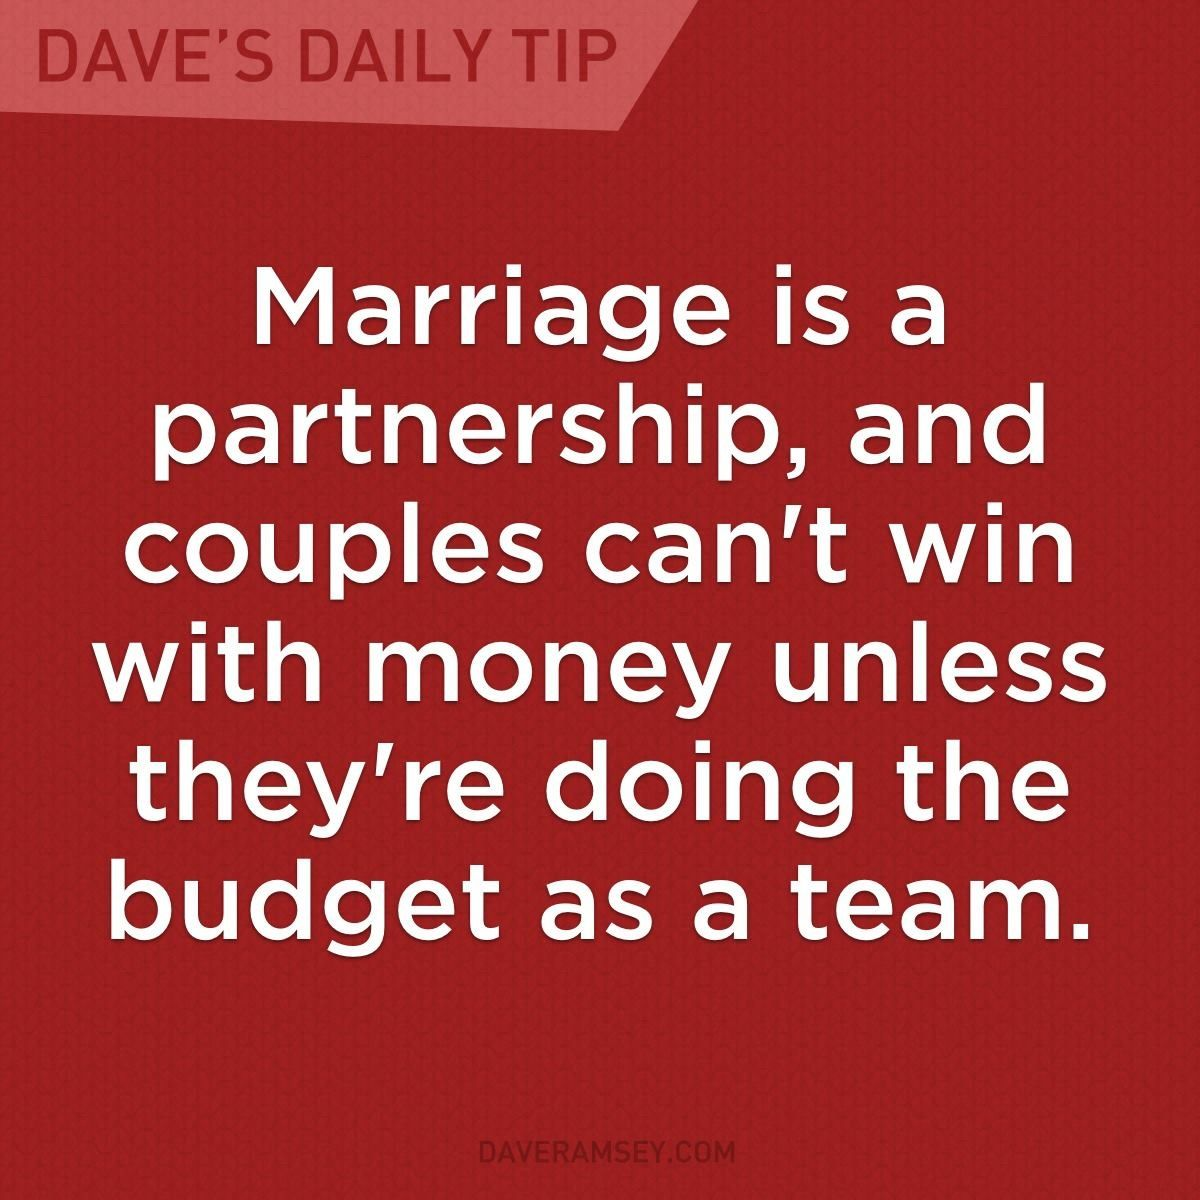 money in marriage Money problems in marriage often happen because couples don't get started correctly with their finances these 8 tips help you start down the right path.